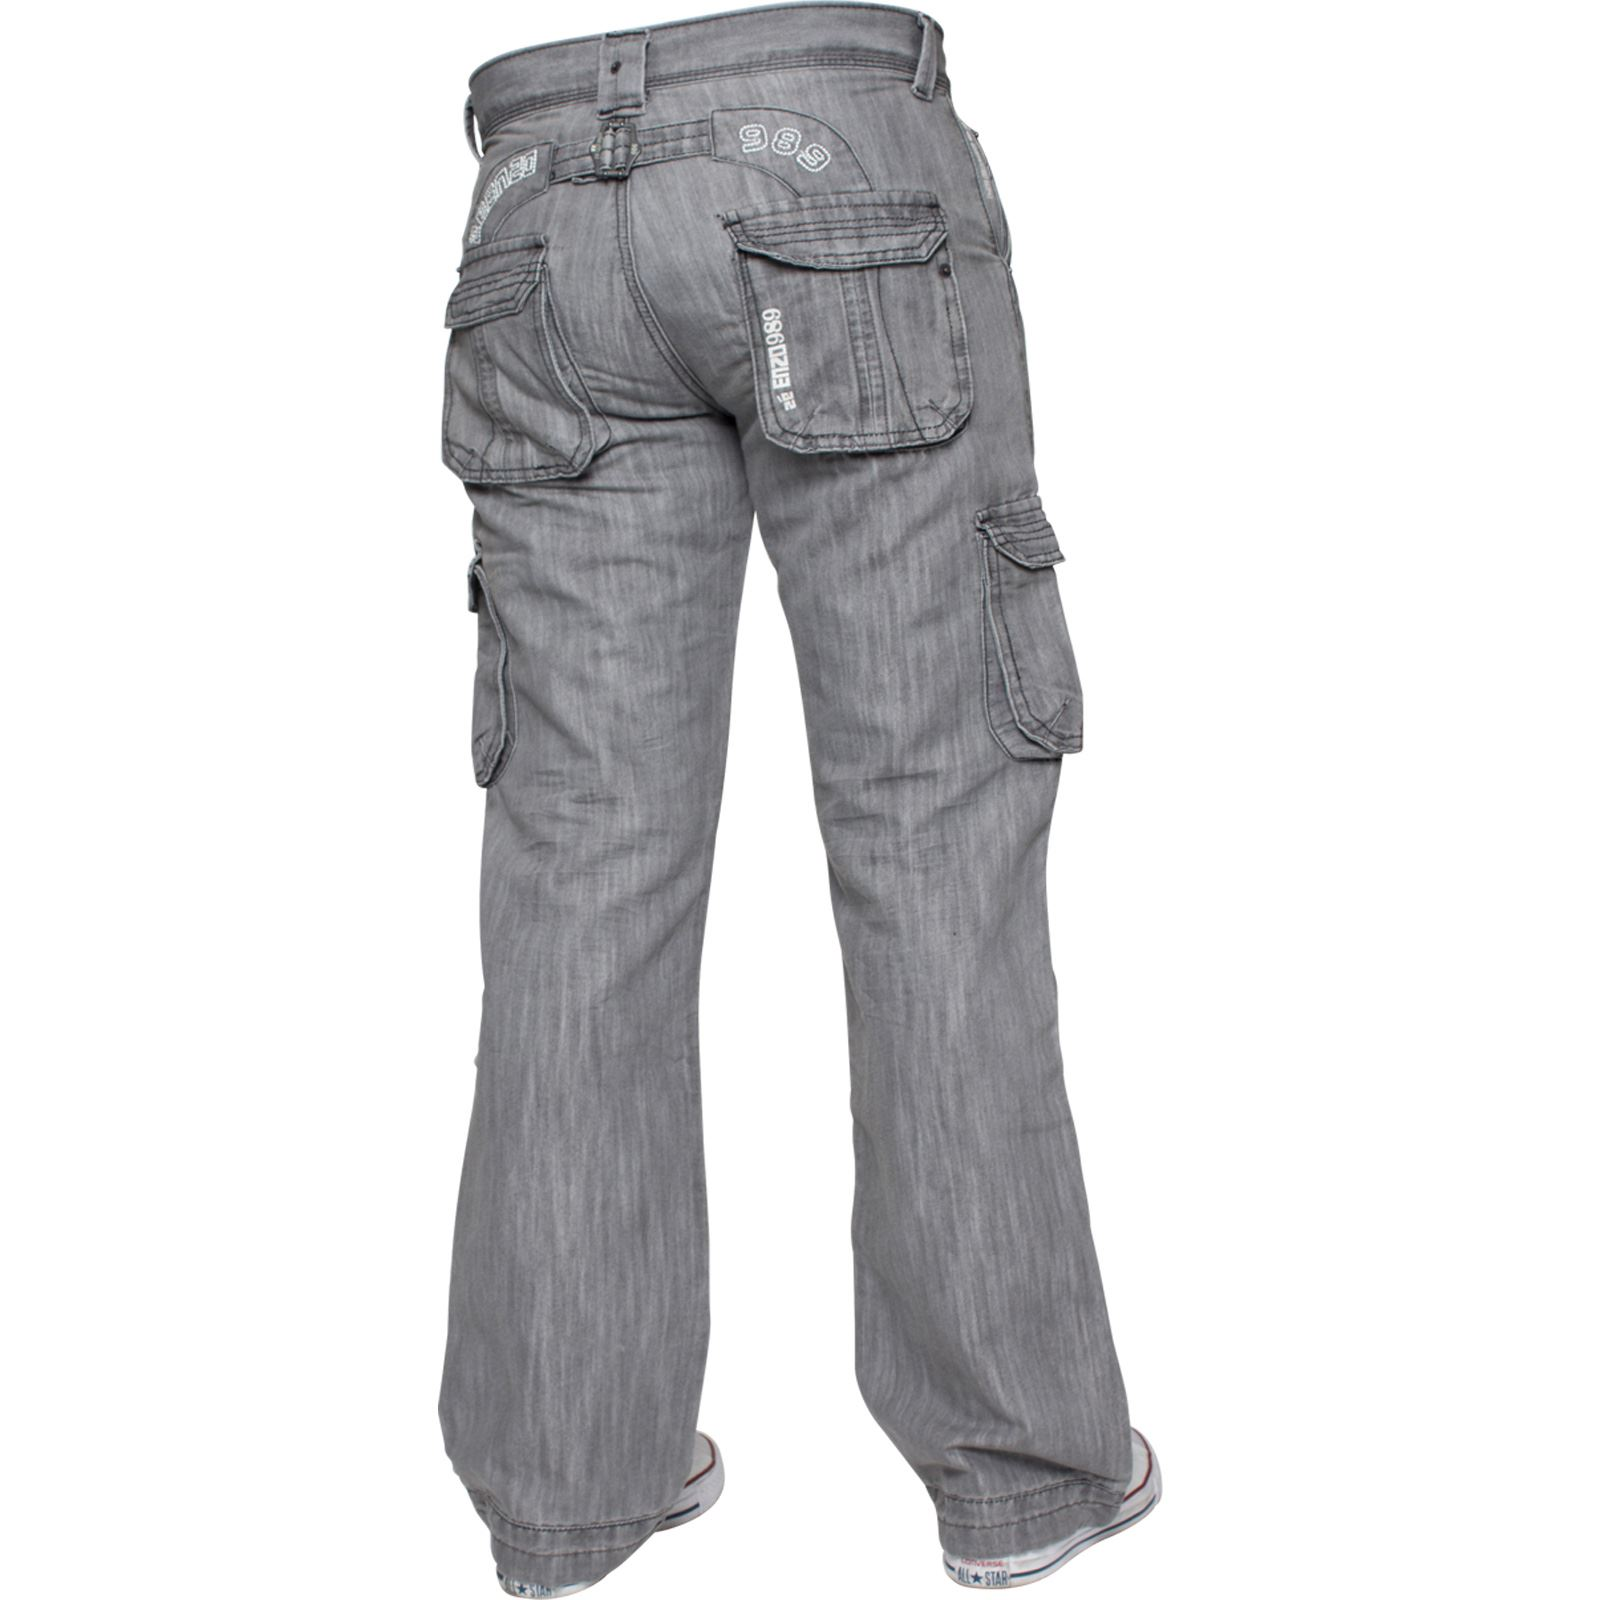 Enzo-Mens-Cargo-Combat-Trousers-Jeans-Work-Casual-Denim-Pants-Big-Tall-All-Waist thumbnail 24